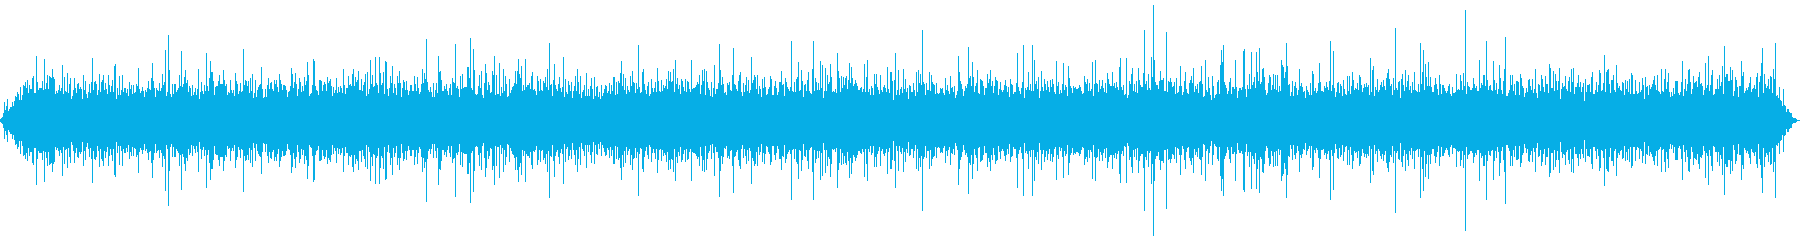 Natural sound of the river's reproduced waveform